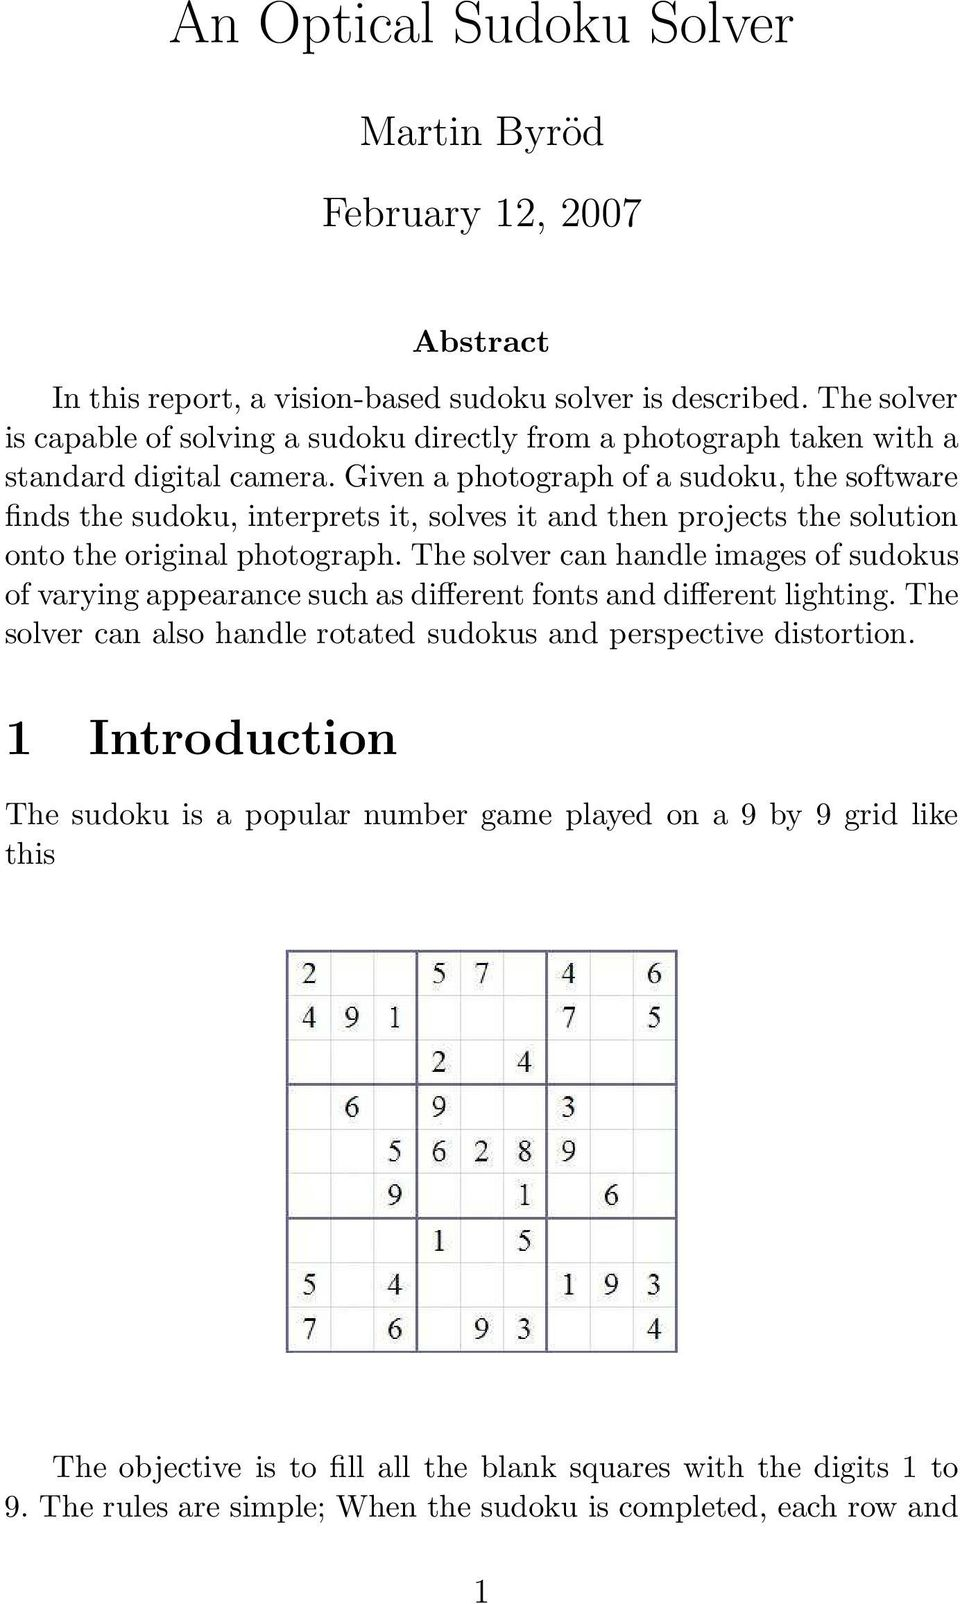 Given a photograph of a sudoku, the software finds the sudoku, interprets it, solves it and then projects the solution onto the original photograph.